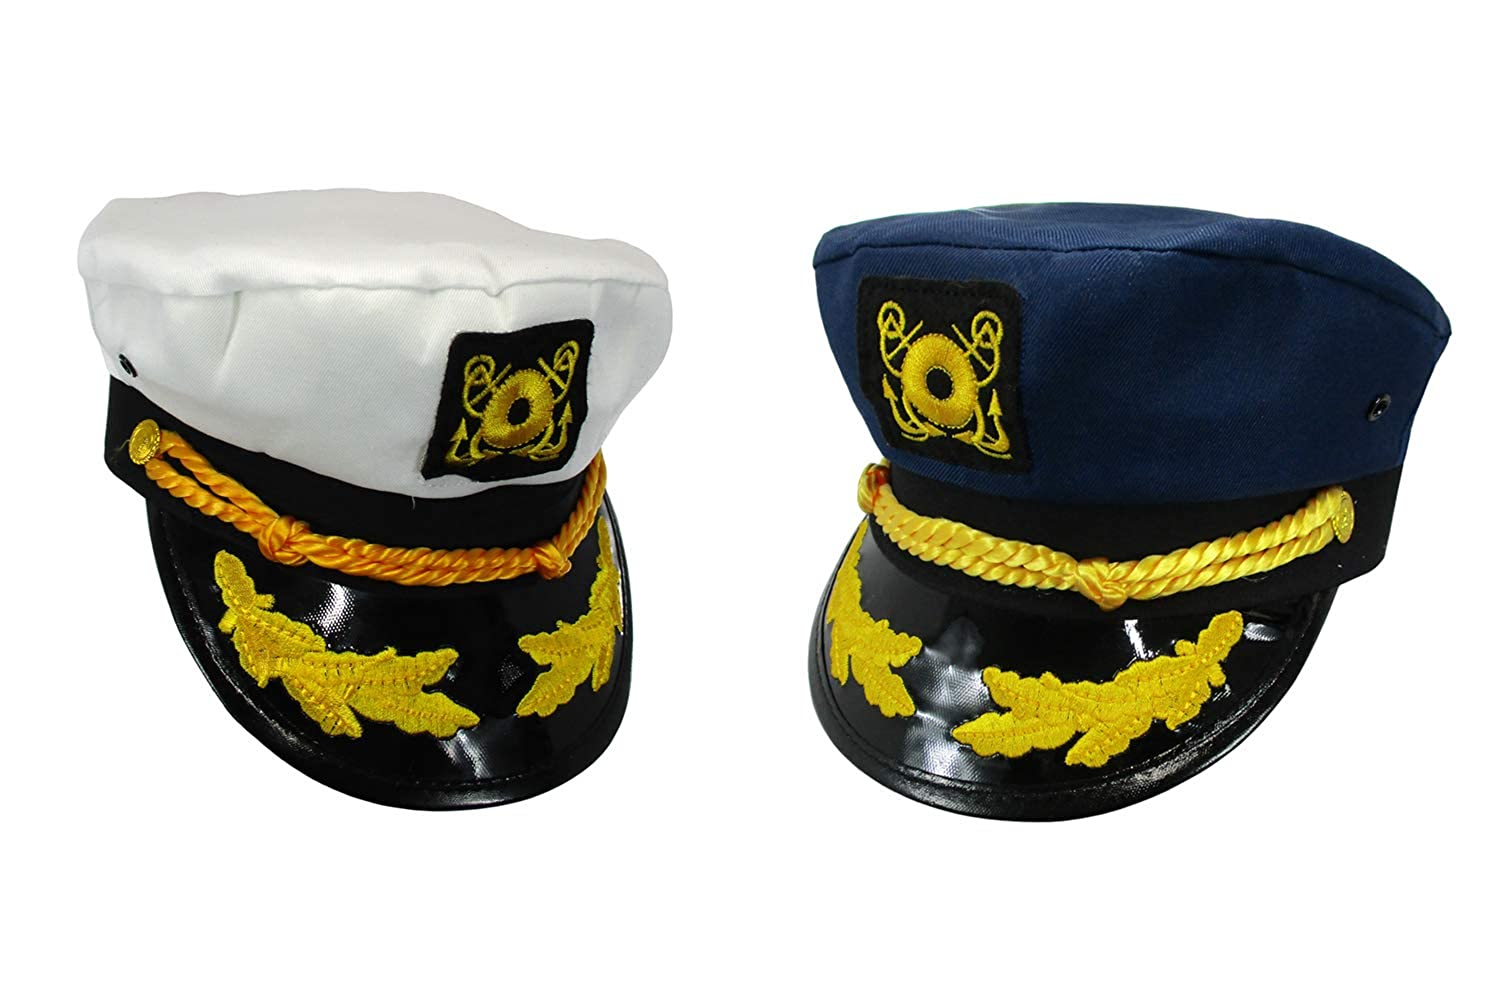 Nicky Bigs Novelties Sailor Ship Yacht Boat Captain Hat Navy Marines Admiral Blue White Gold 2 Pack